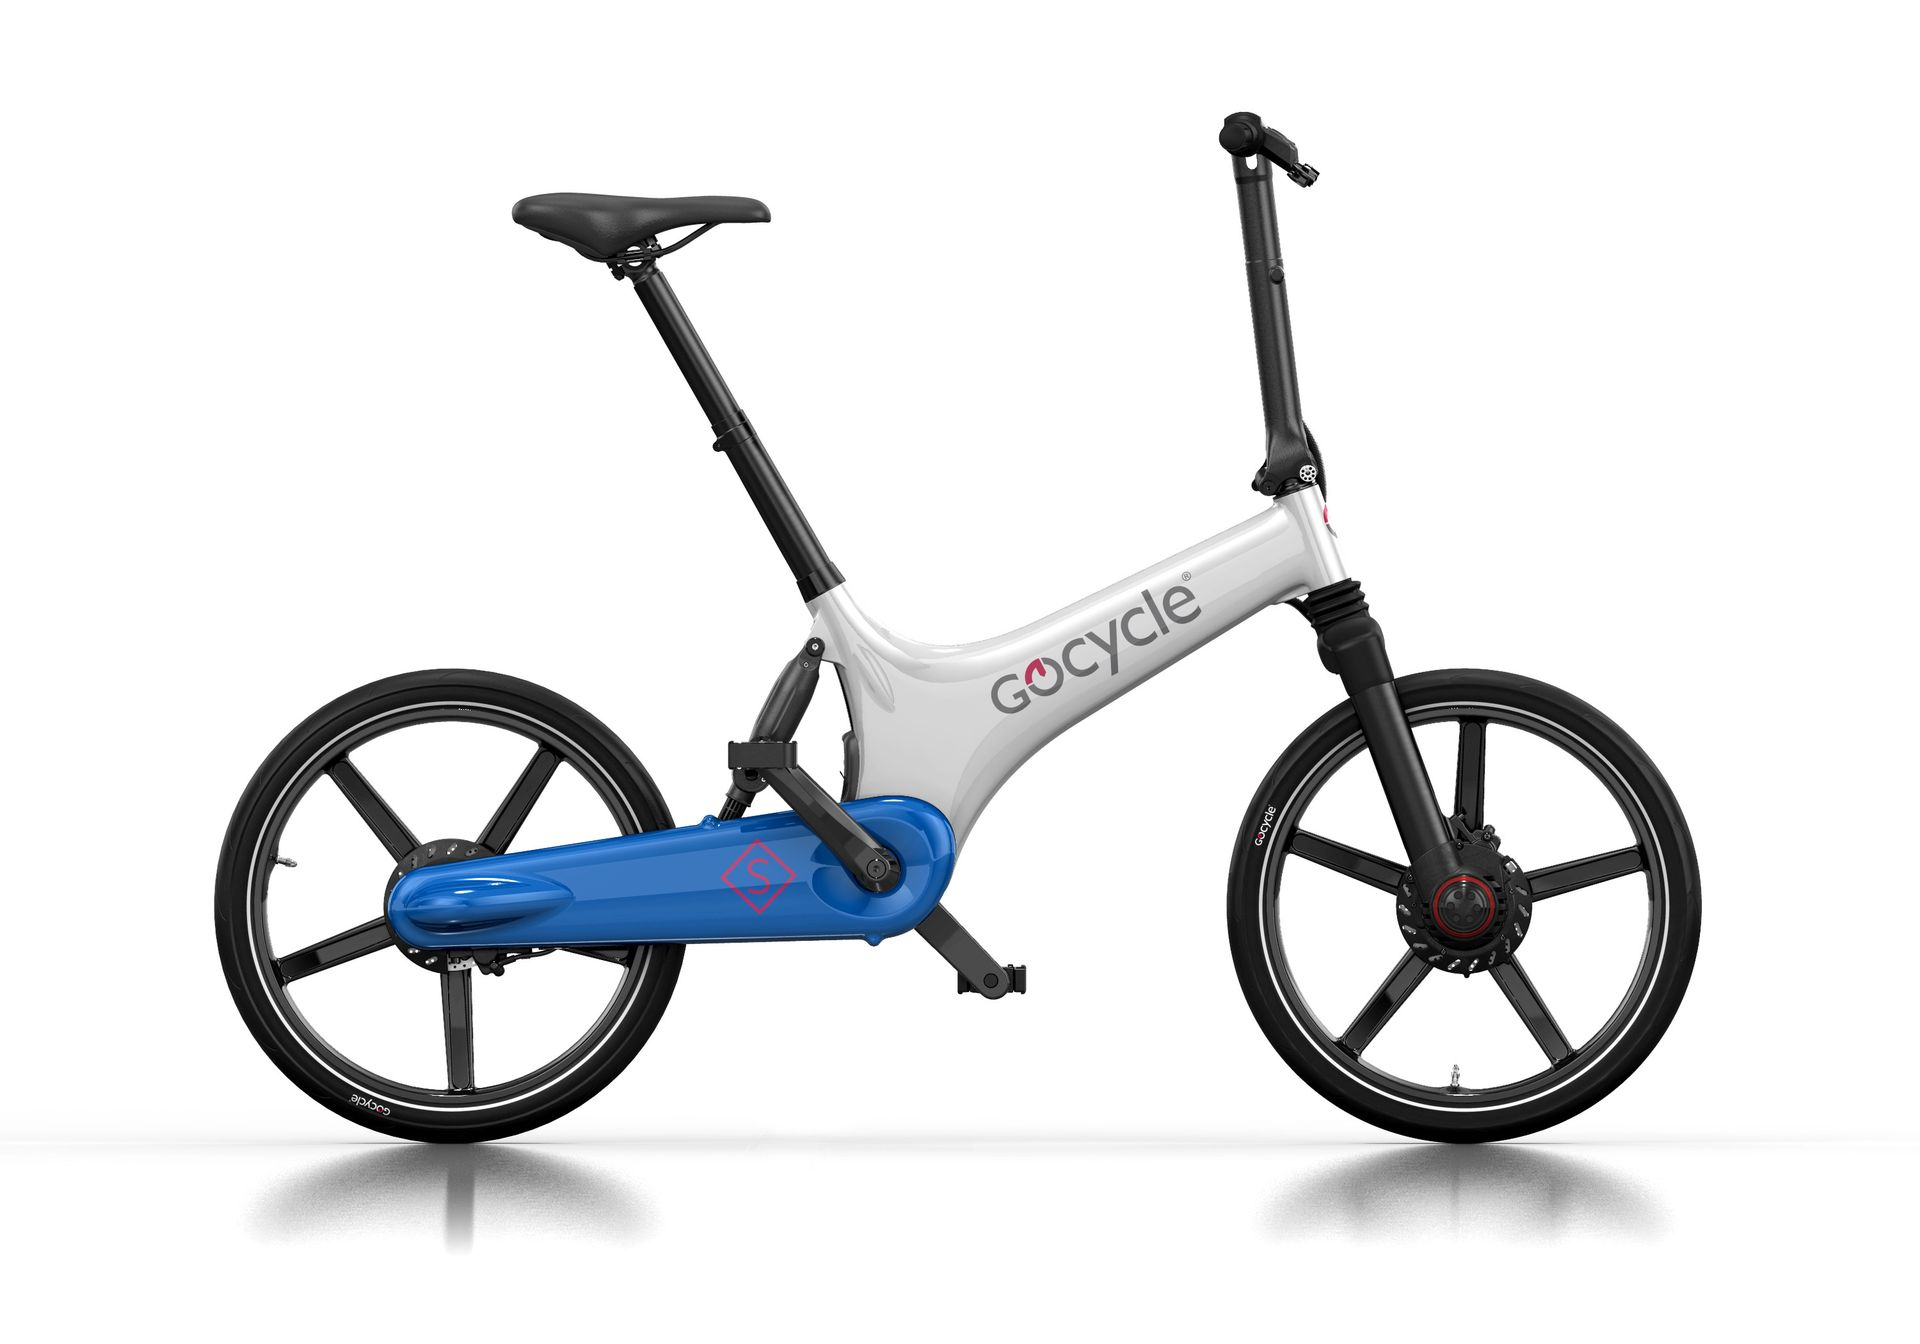 Gocycle E-Bike GS